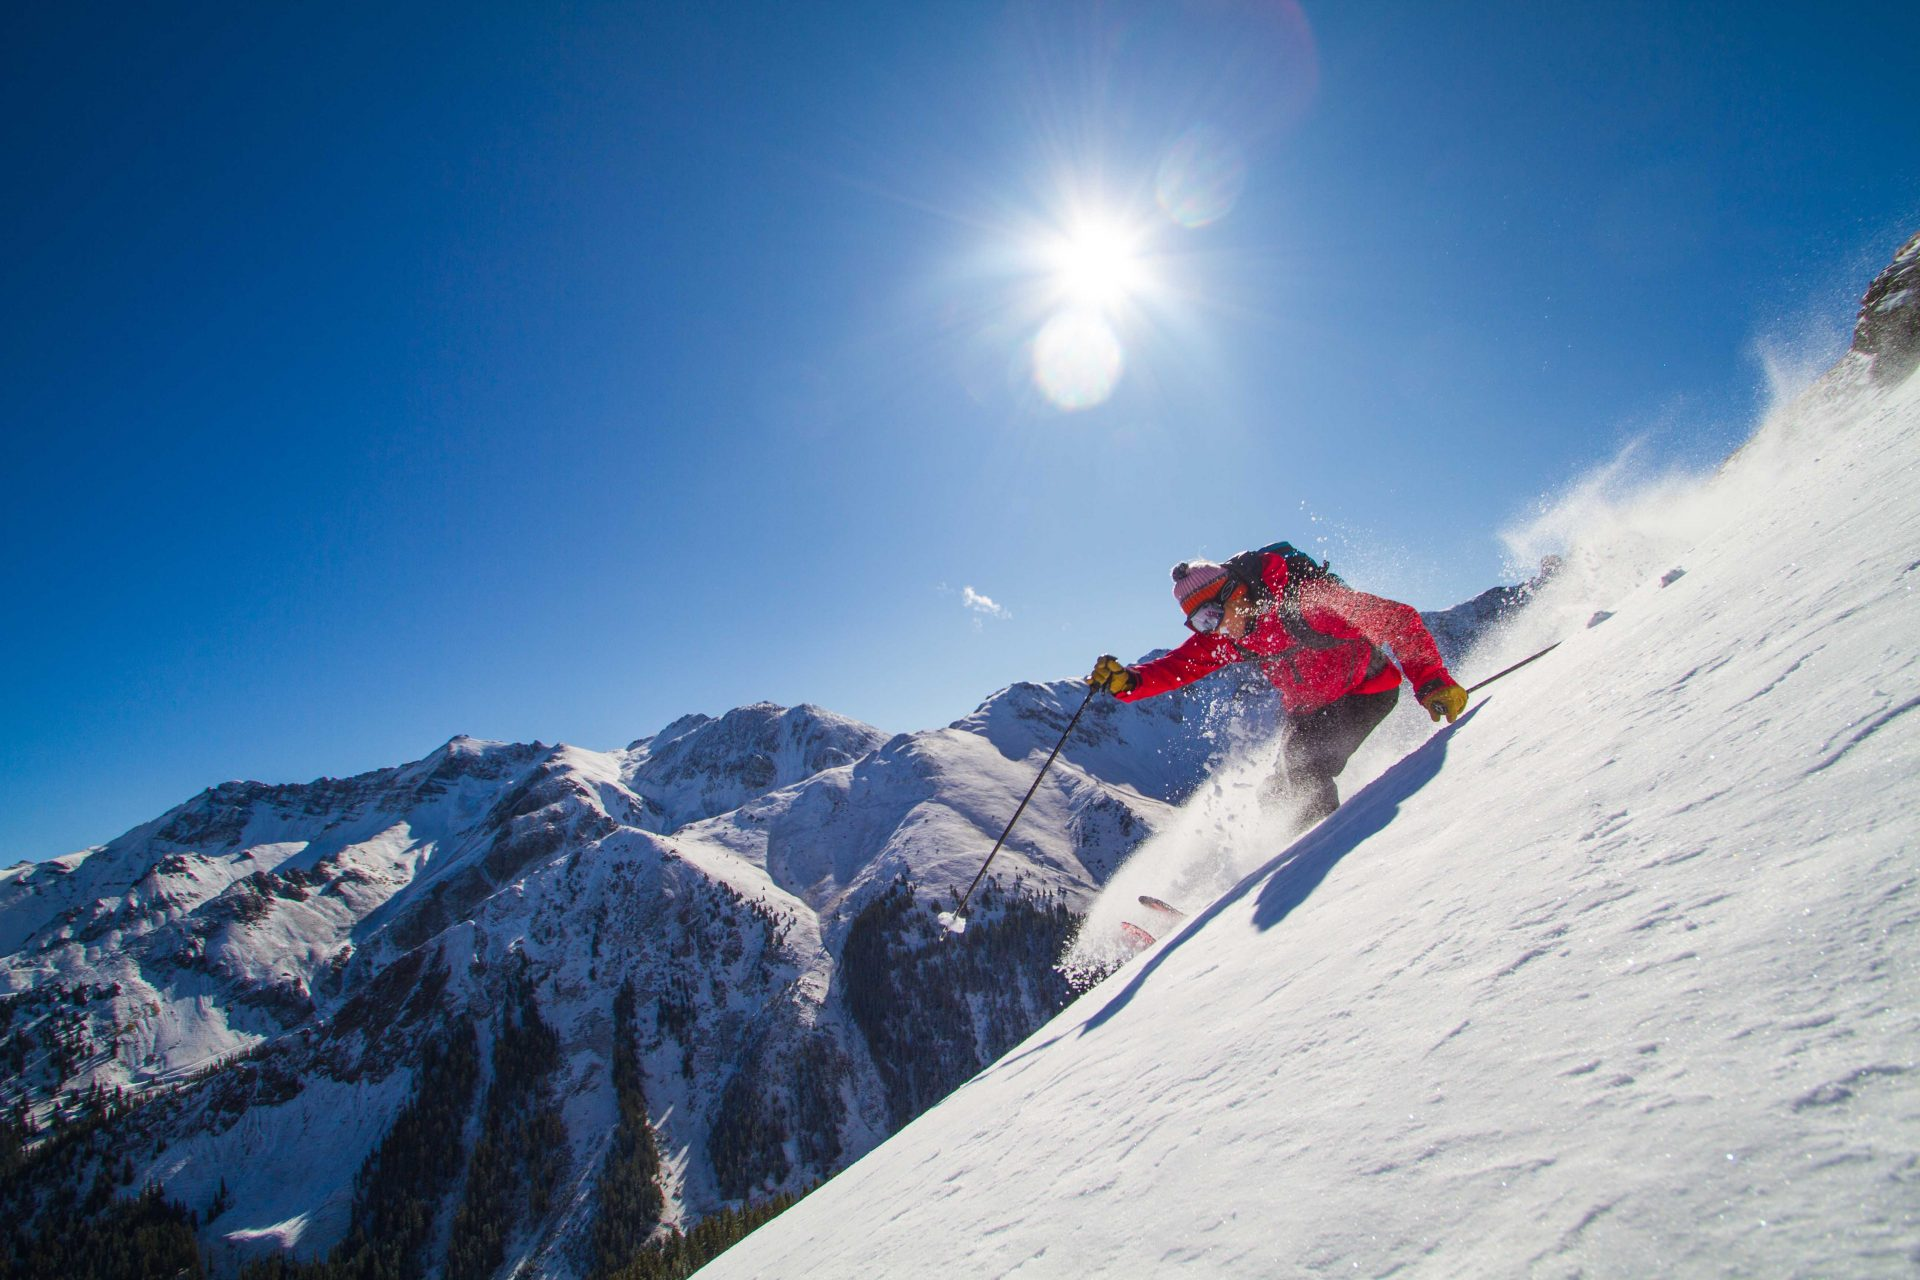 The 5 Steps of Avalanche Safety